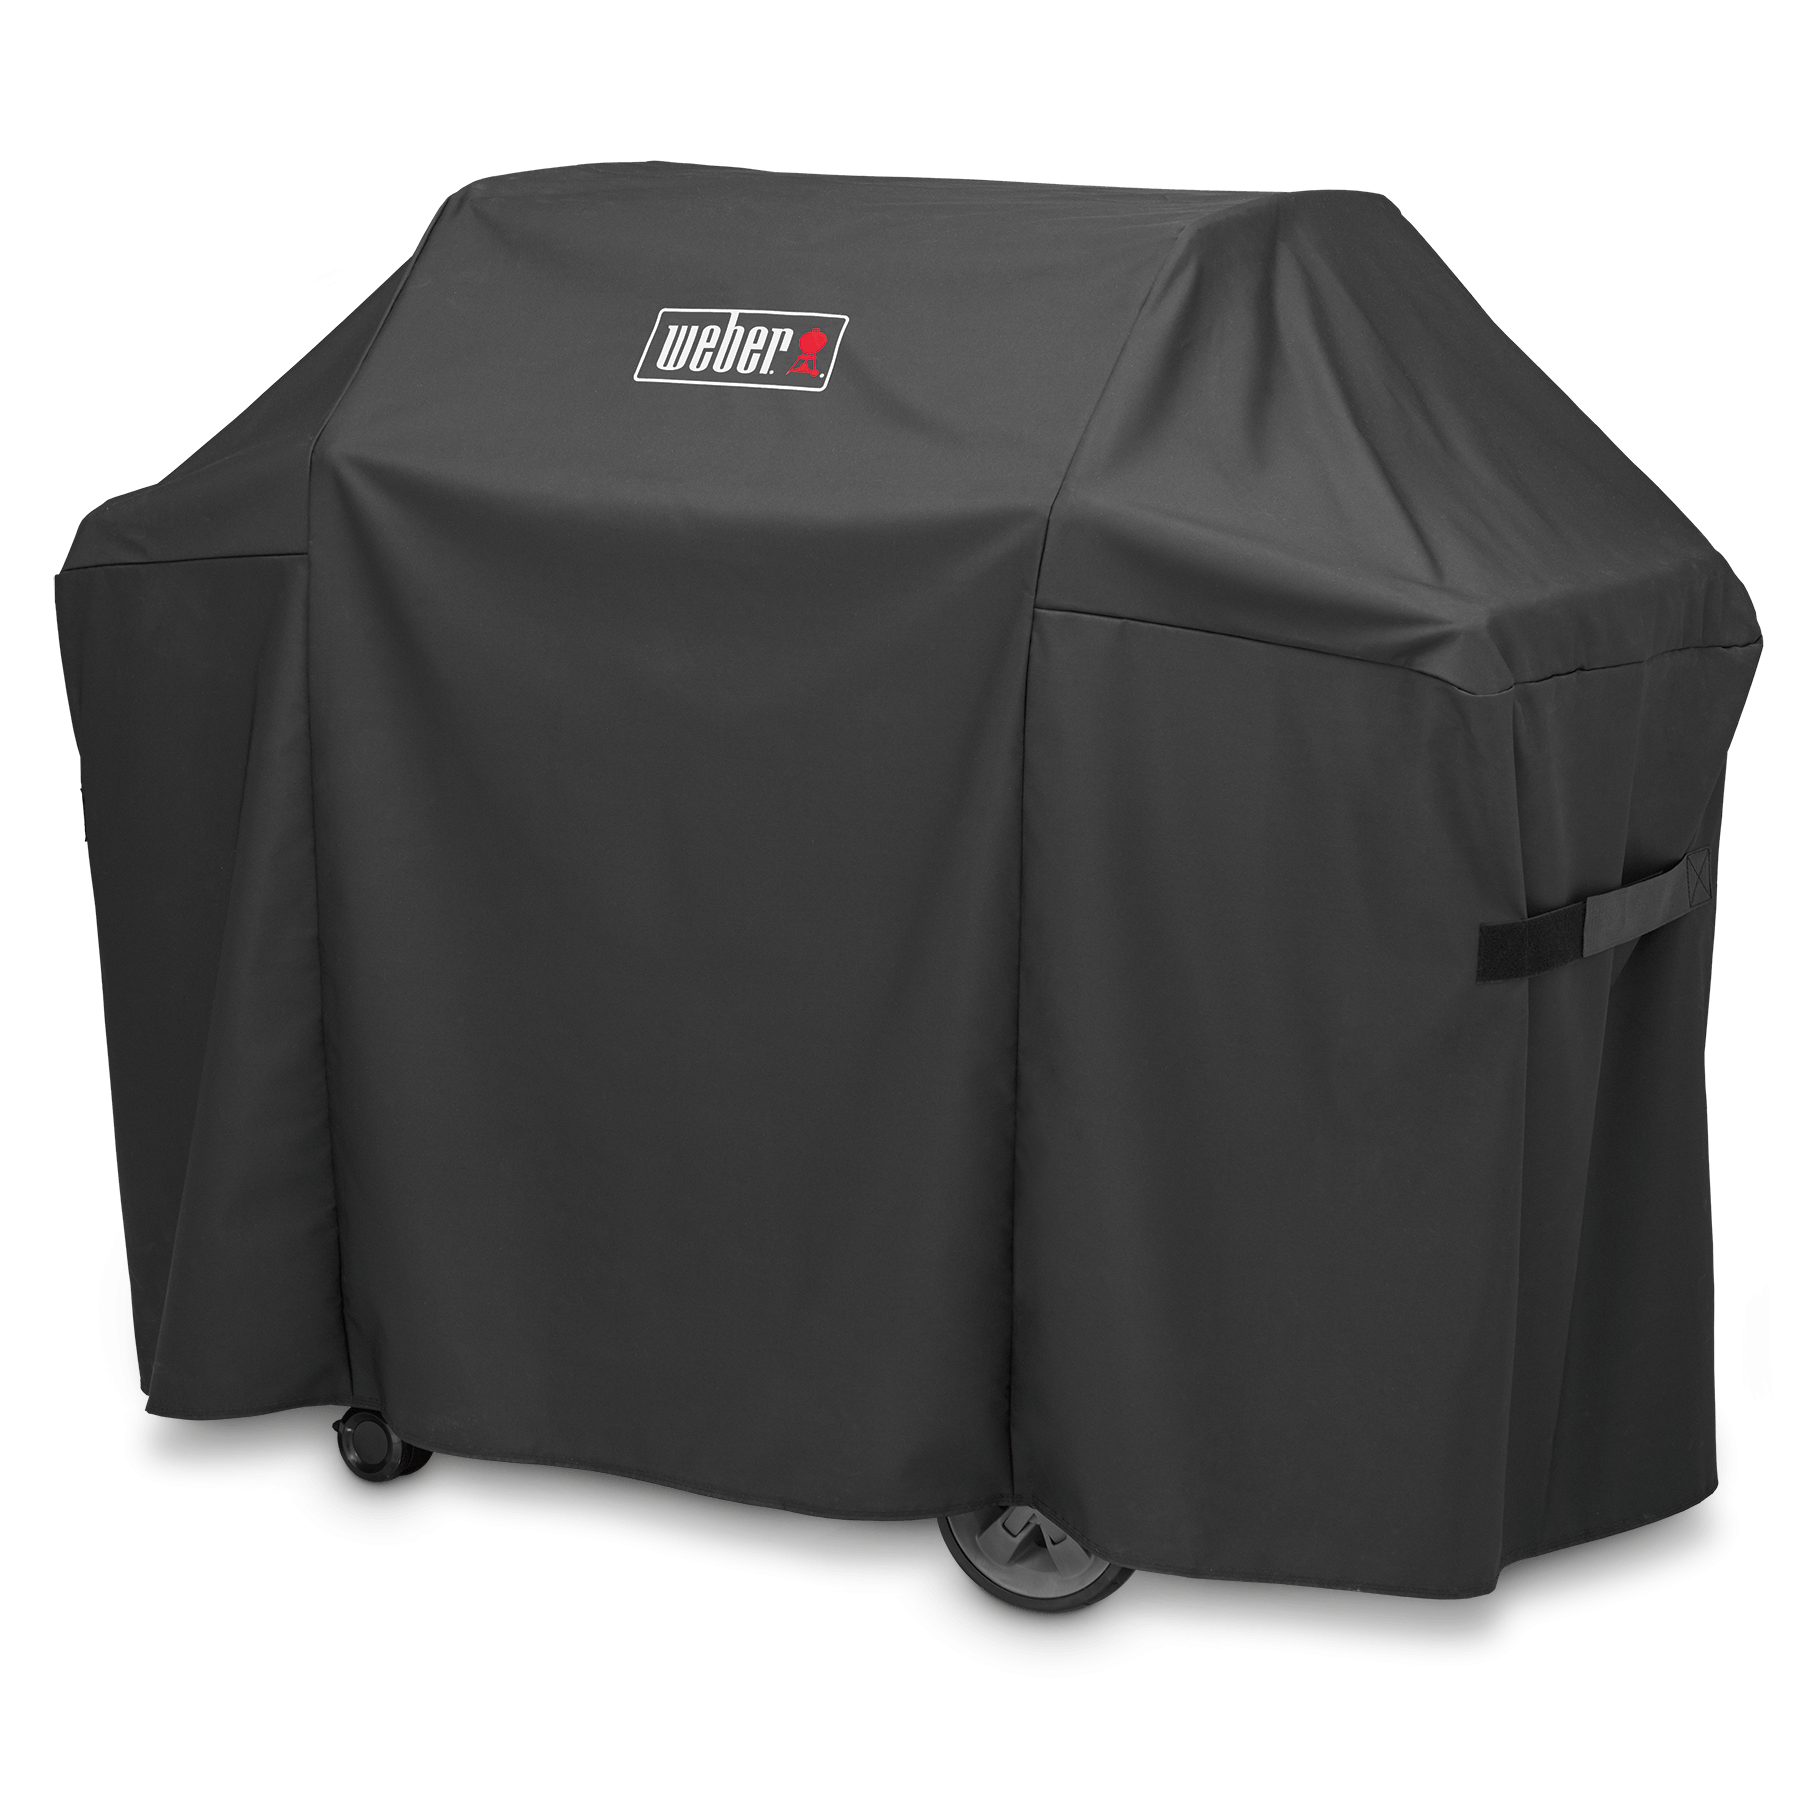 weber genesis grill cover Premium Grill Cover – Genesis II/300/LX 300 | Weber Grills weber genesis grill cover